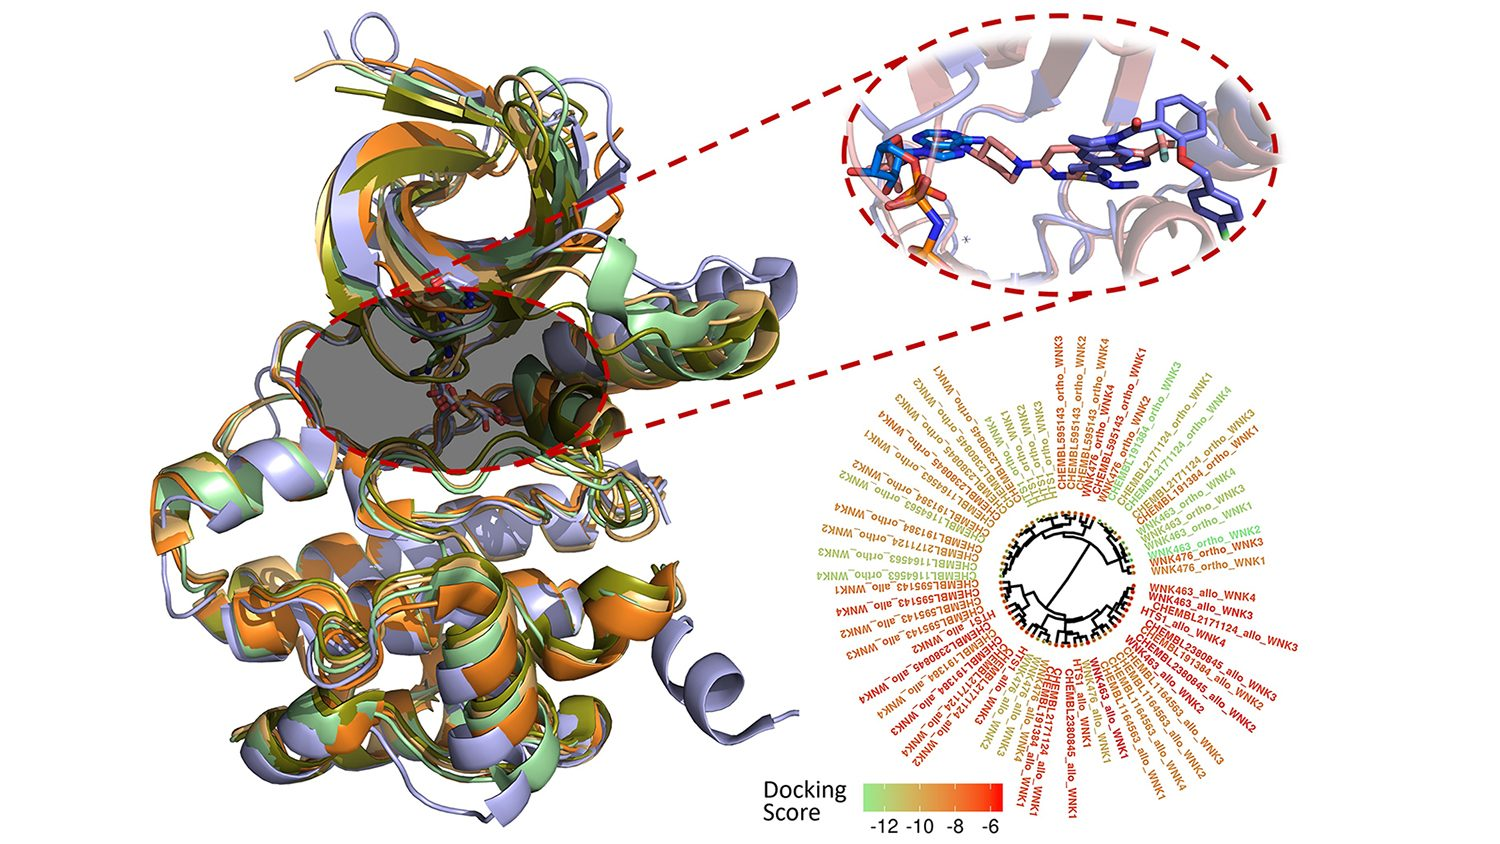 computer modeling of WNK kinase inhibitors